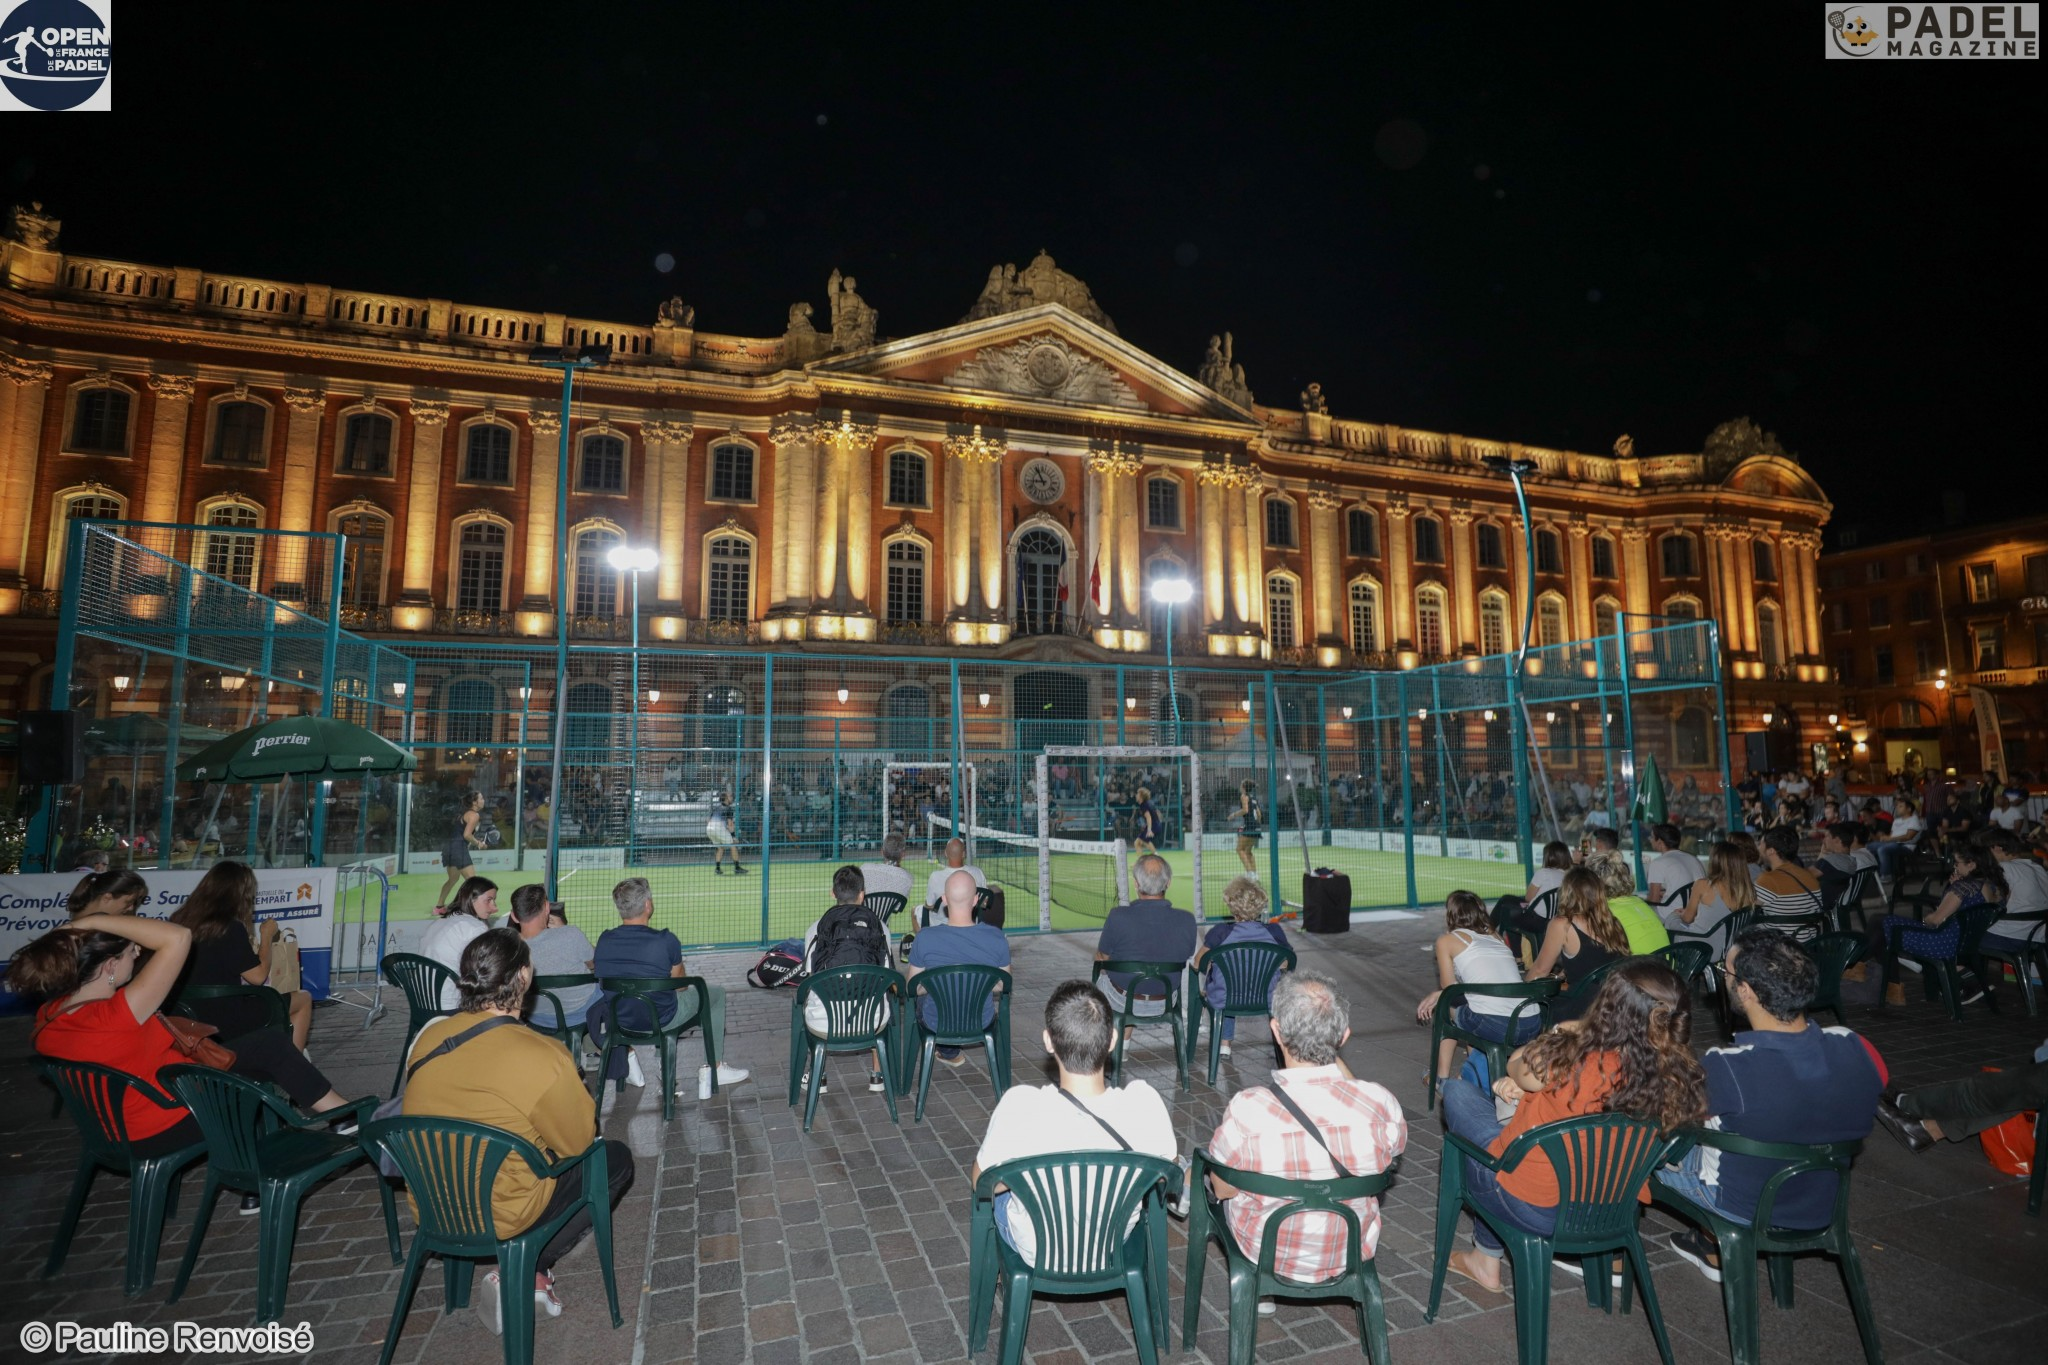 Padel in night session: There is a crowd!